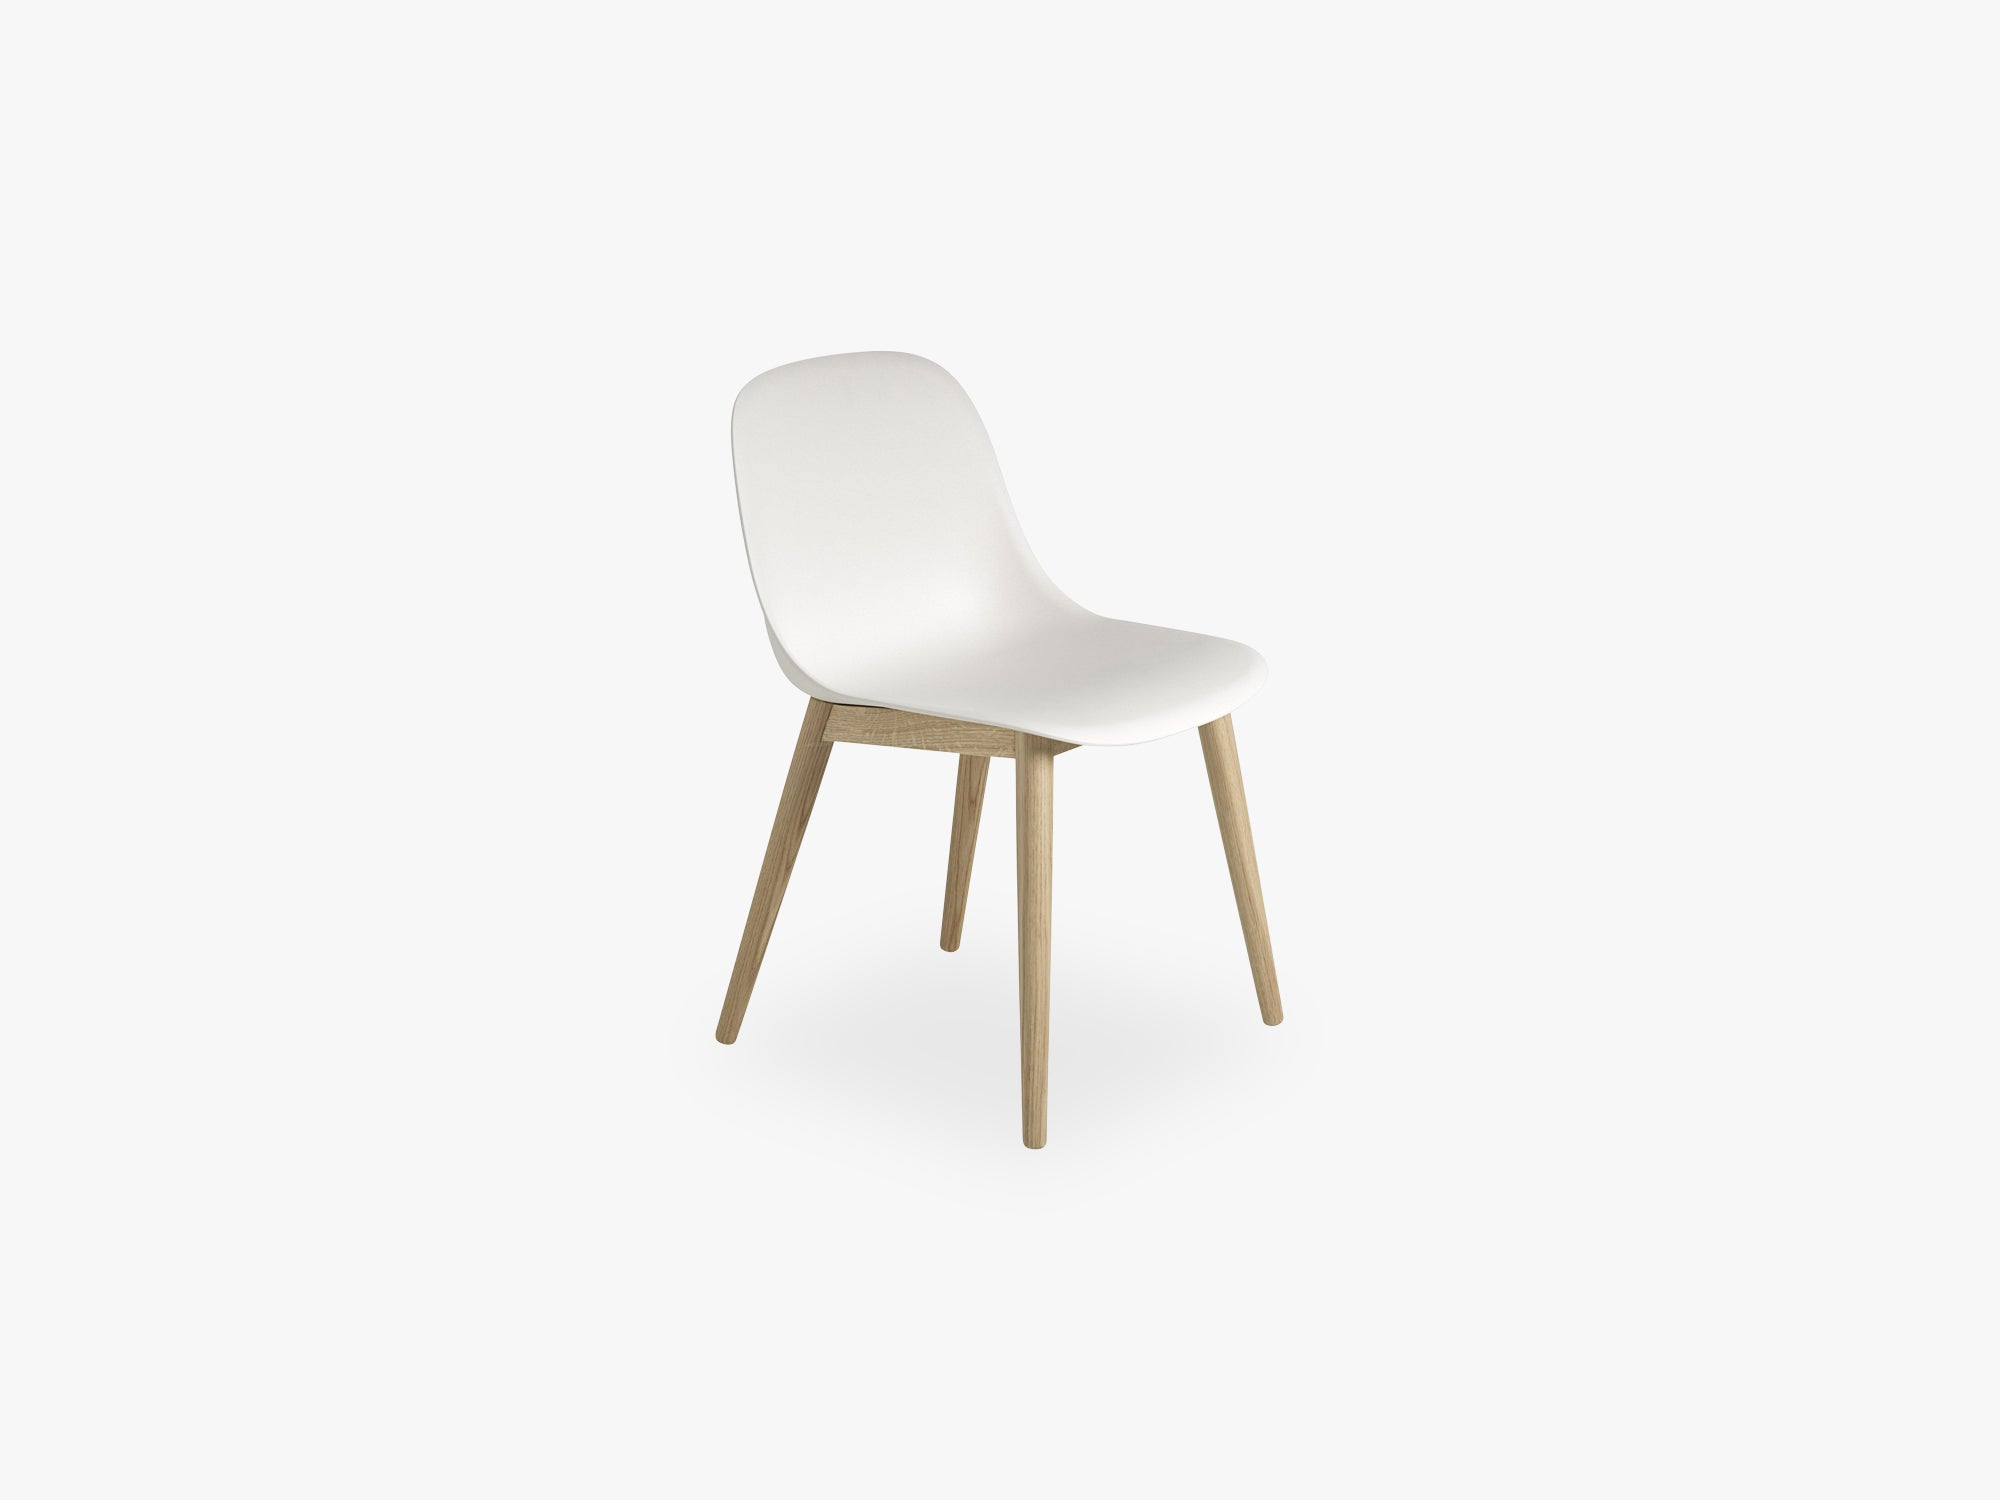 Fiber Side Chair - Wood Base - Normal Shell, Natural White/Oak fra Muuto